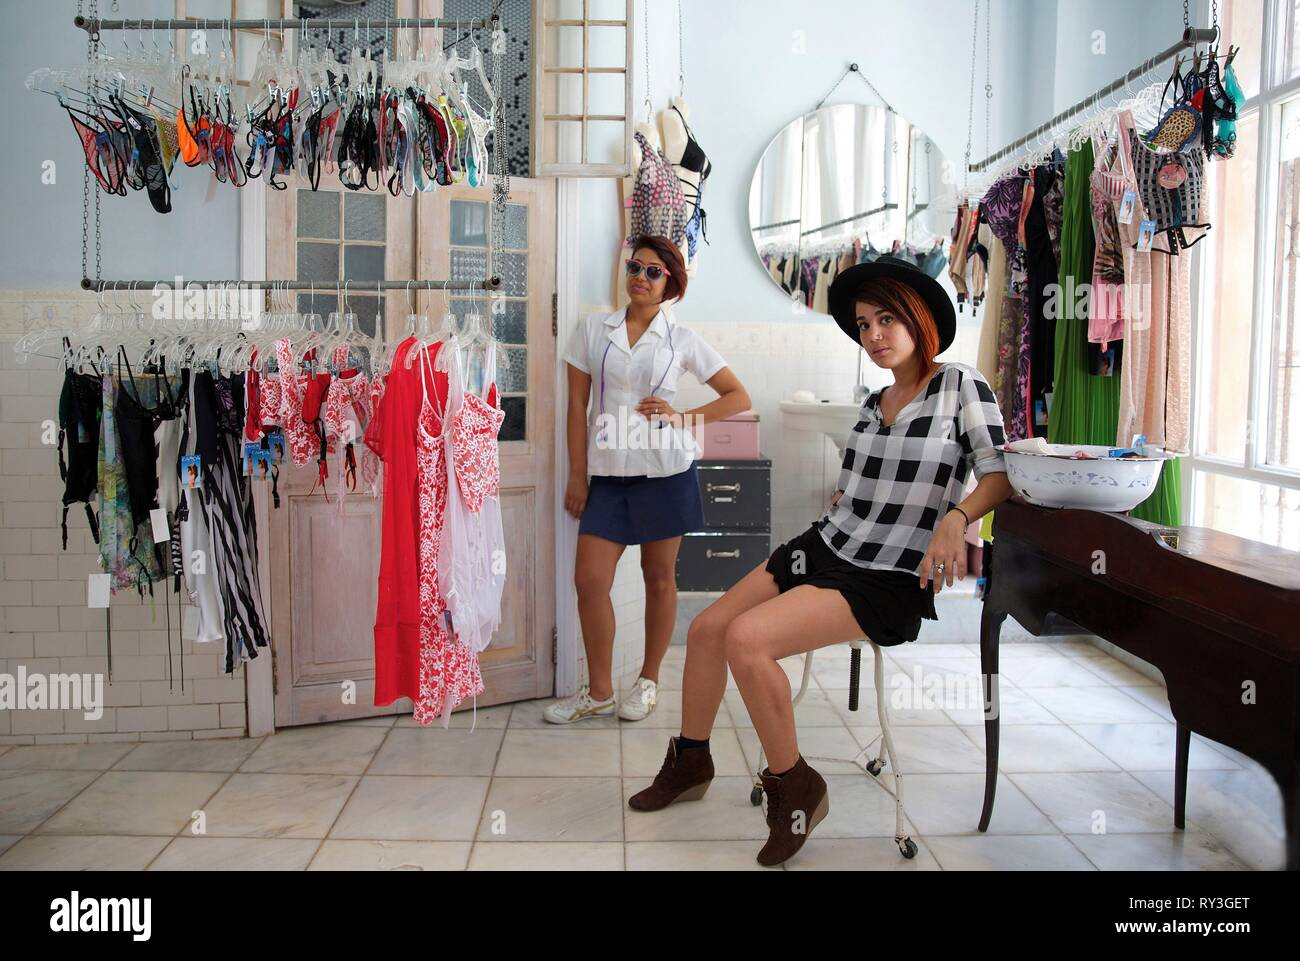 Arte Boutique Ibi Cuba West Indies Stock Photos Cuba West Indies Stock Images